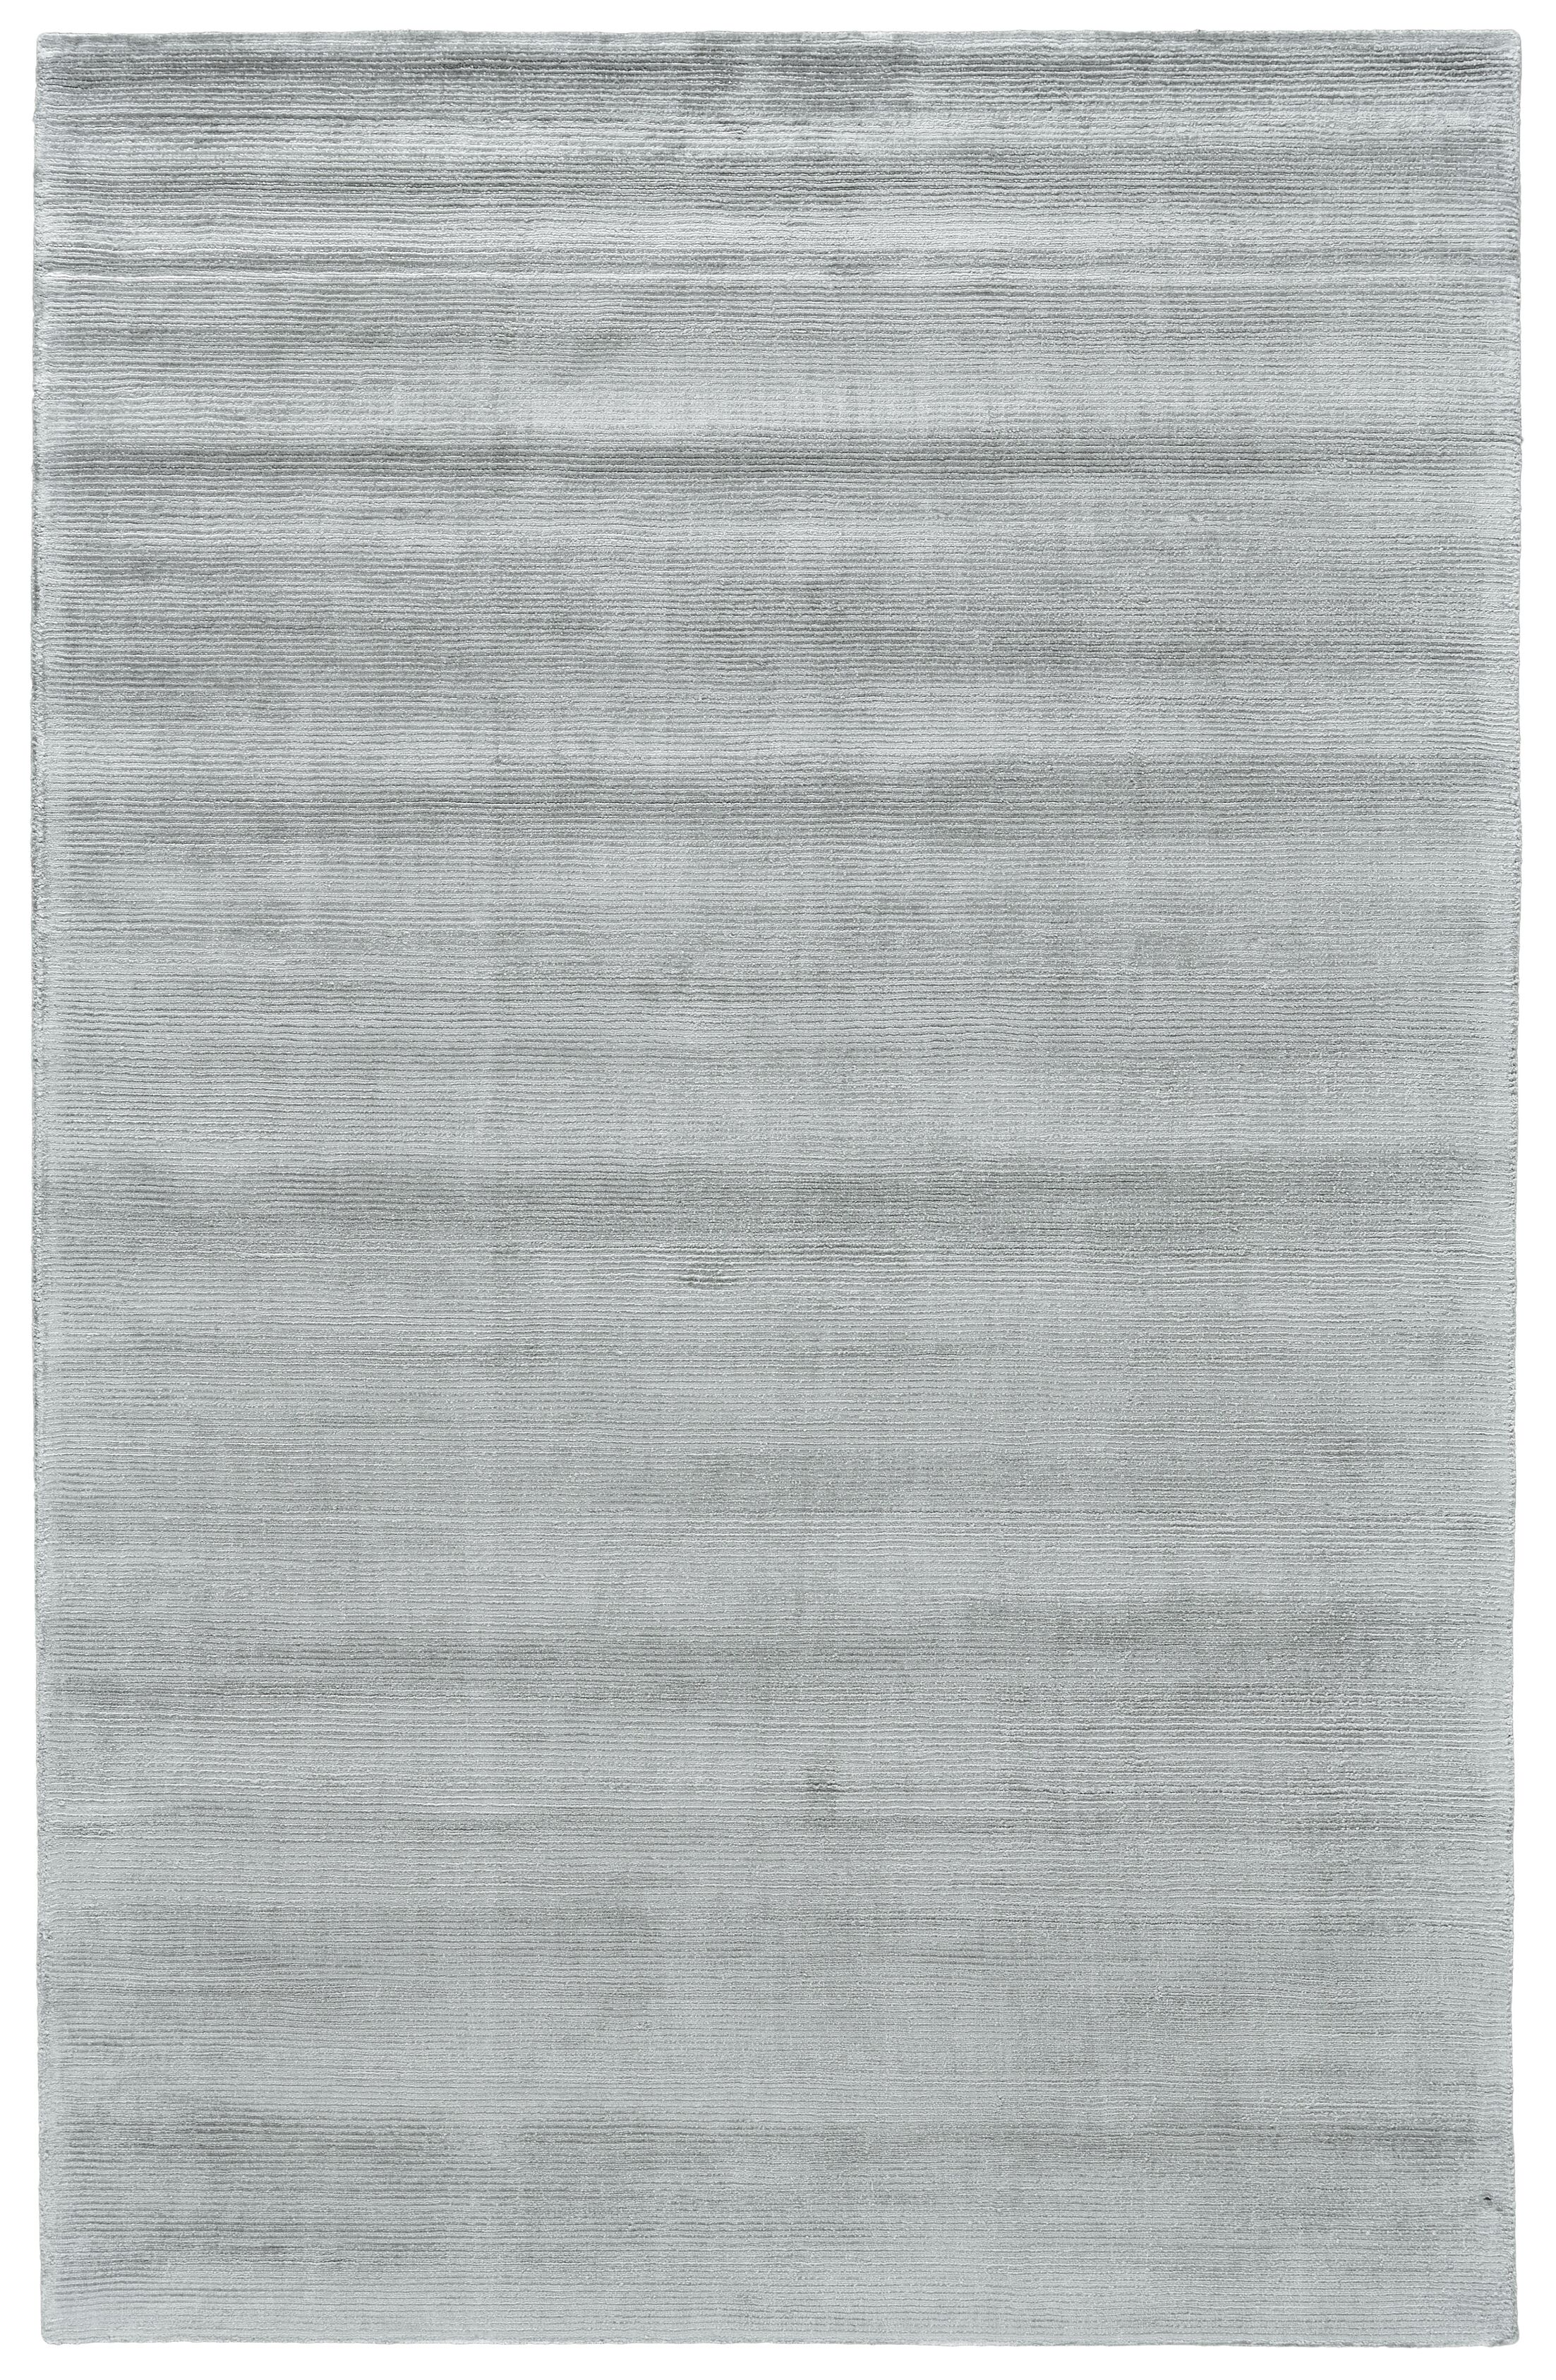 Riaria Hand-Woven Mist Area Rug Rug Size: Rectangle 5' x 8'